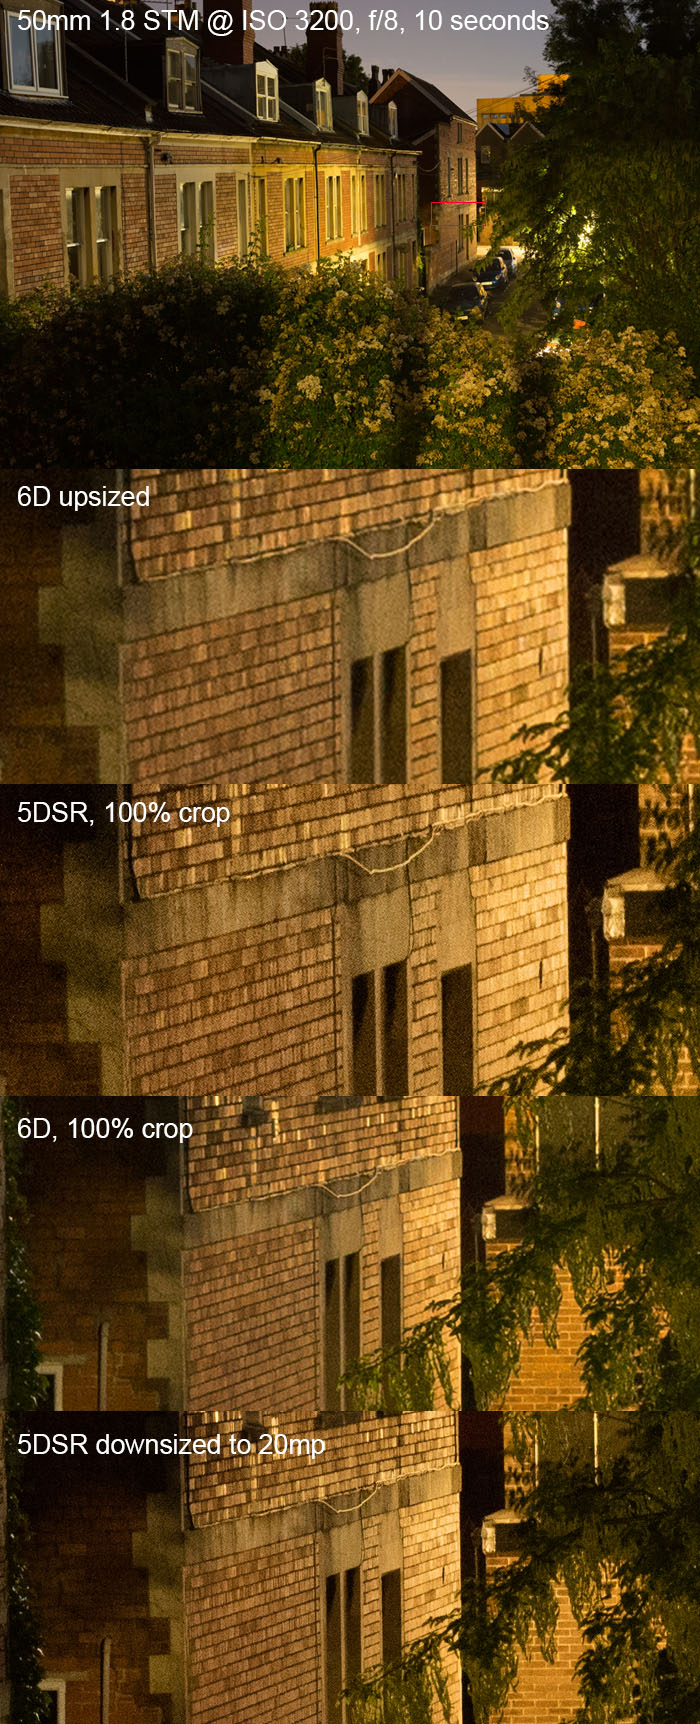 Overall the 5DS and 5DSR seem to have similar noise performance to the previous generation but there is more detail.